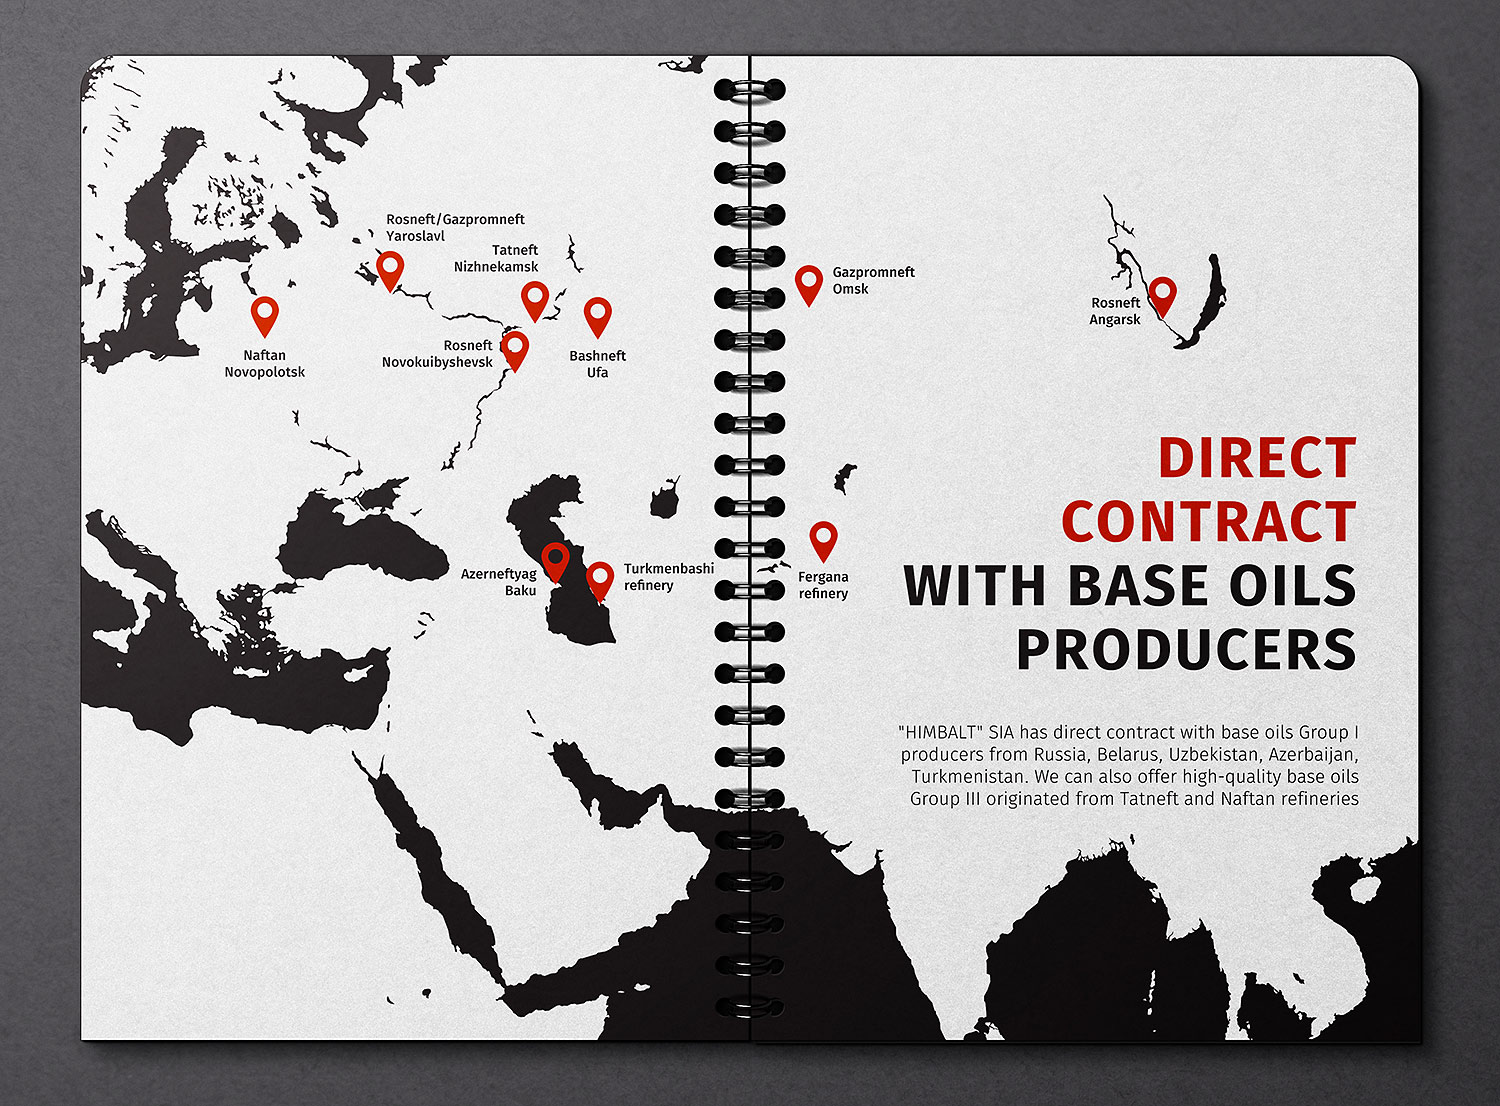 Himbalt company presentation design. Direct contract with base oils producers.